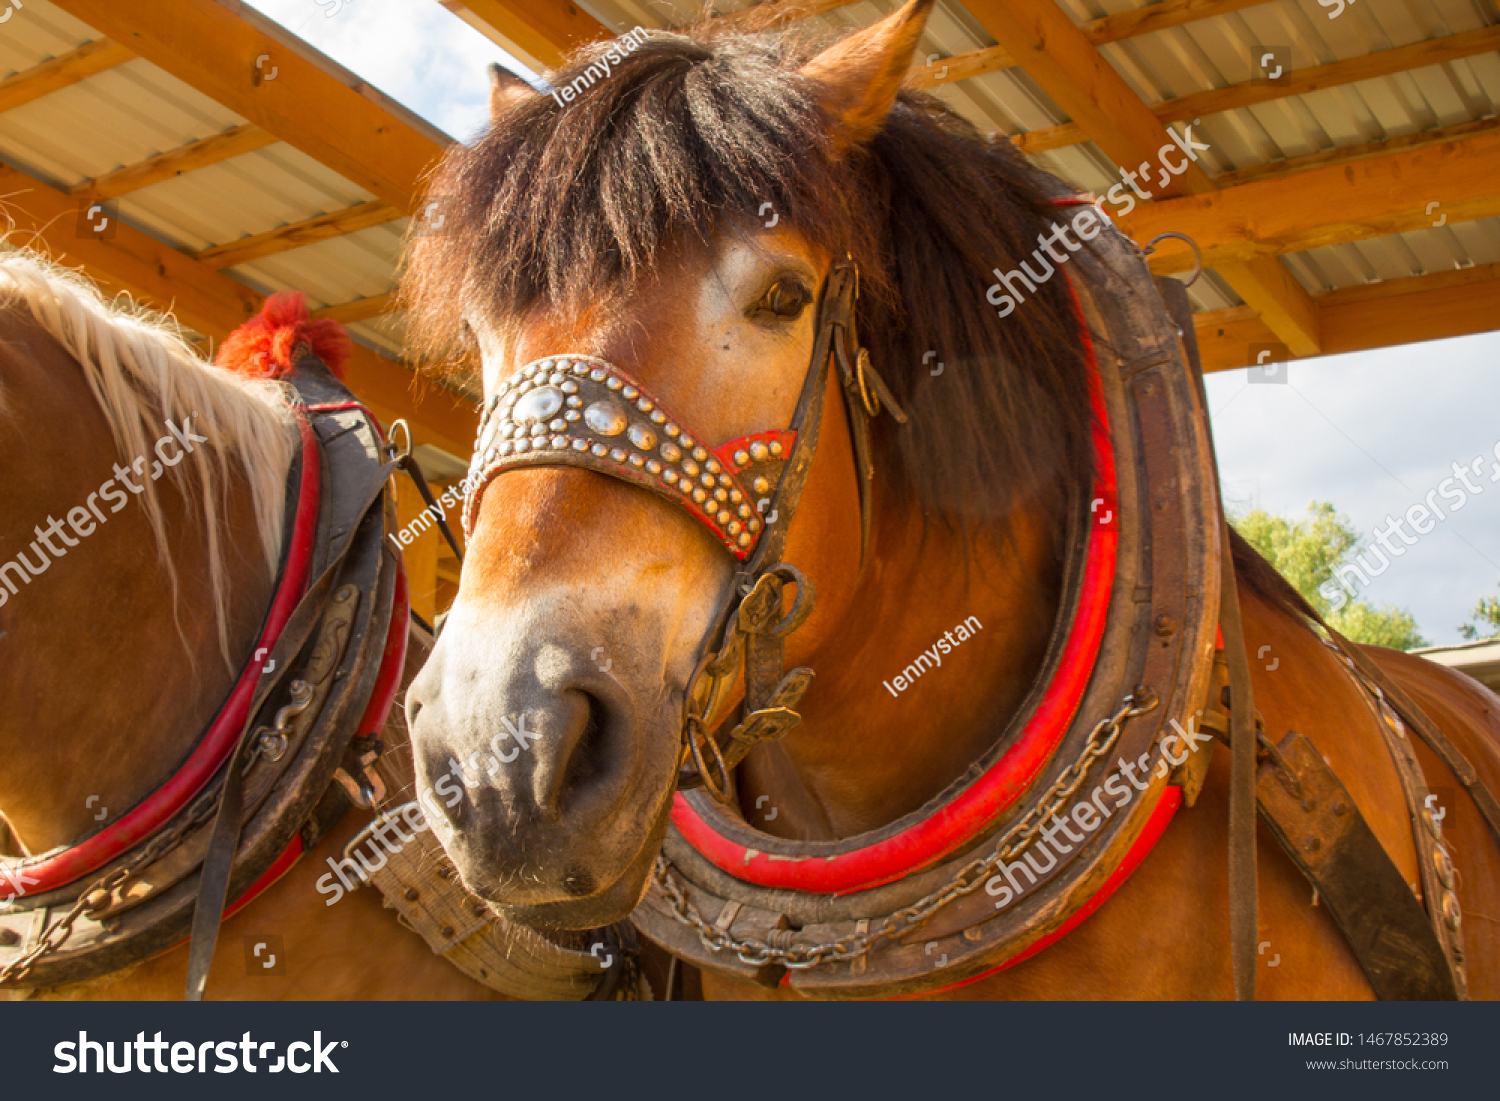 stock-photo-close-up-on-brown-horses-hea